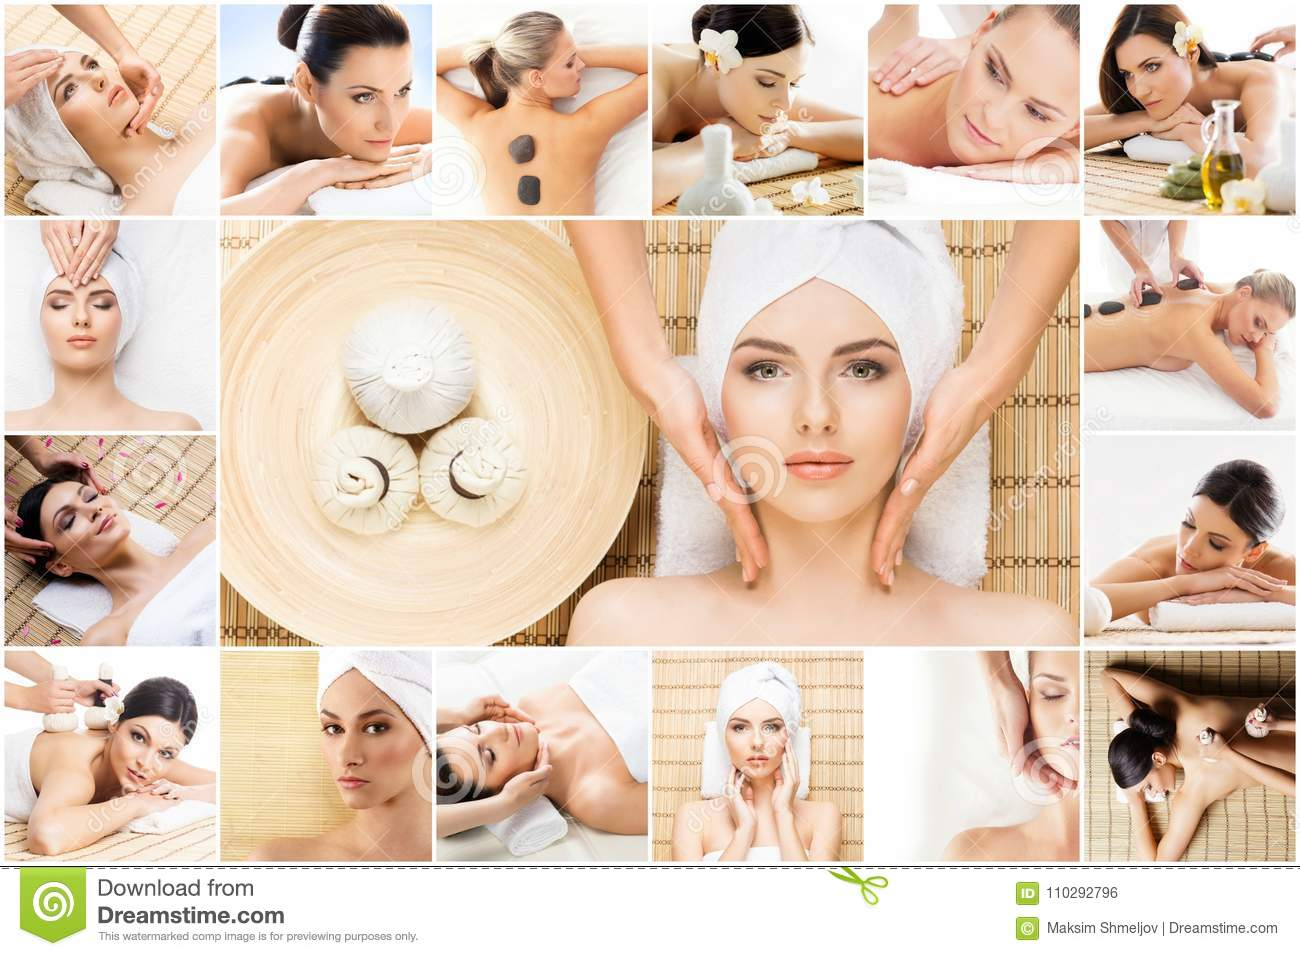 Traditional massage and healthcare treatment in spa. Young, beautiful and healthy girls having therapy. Collage